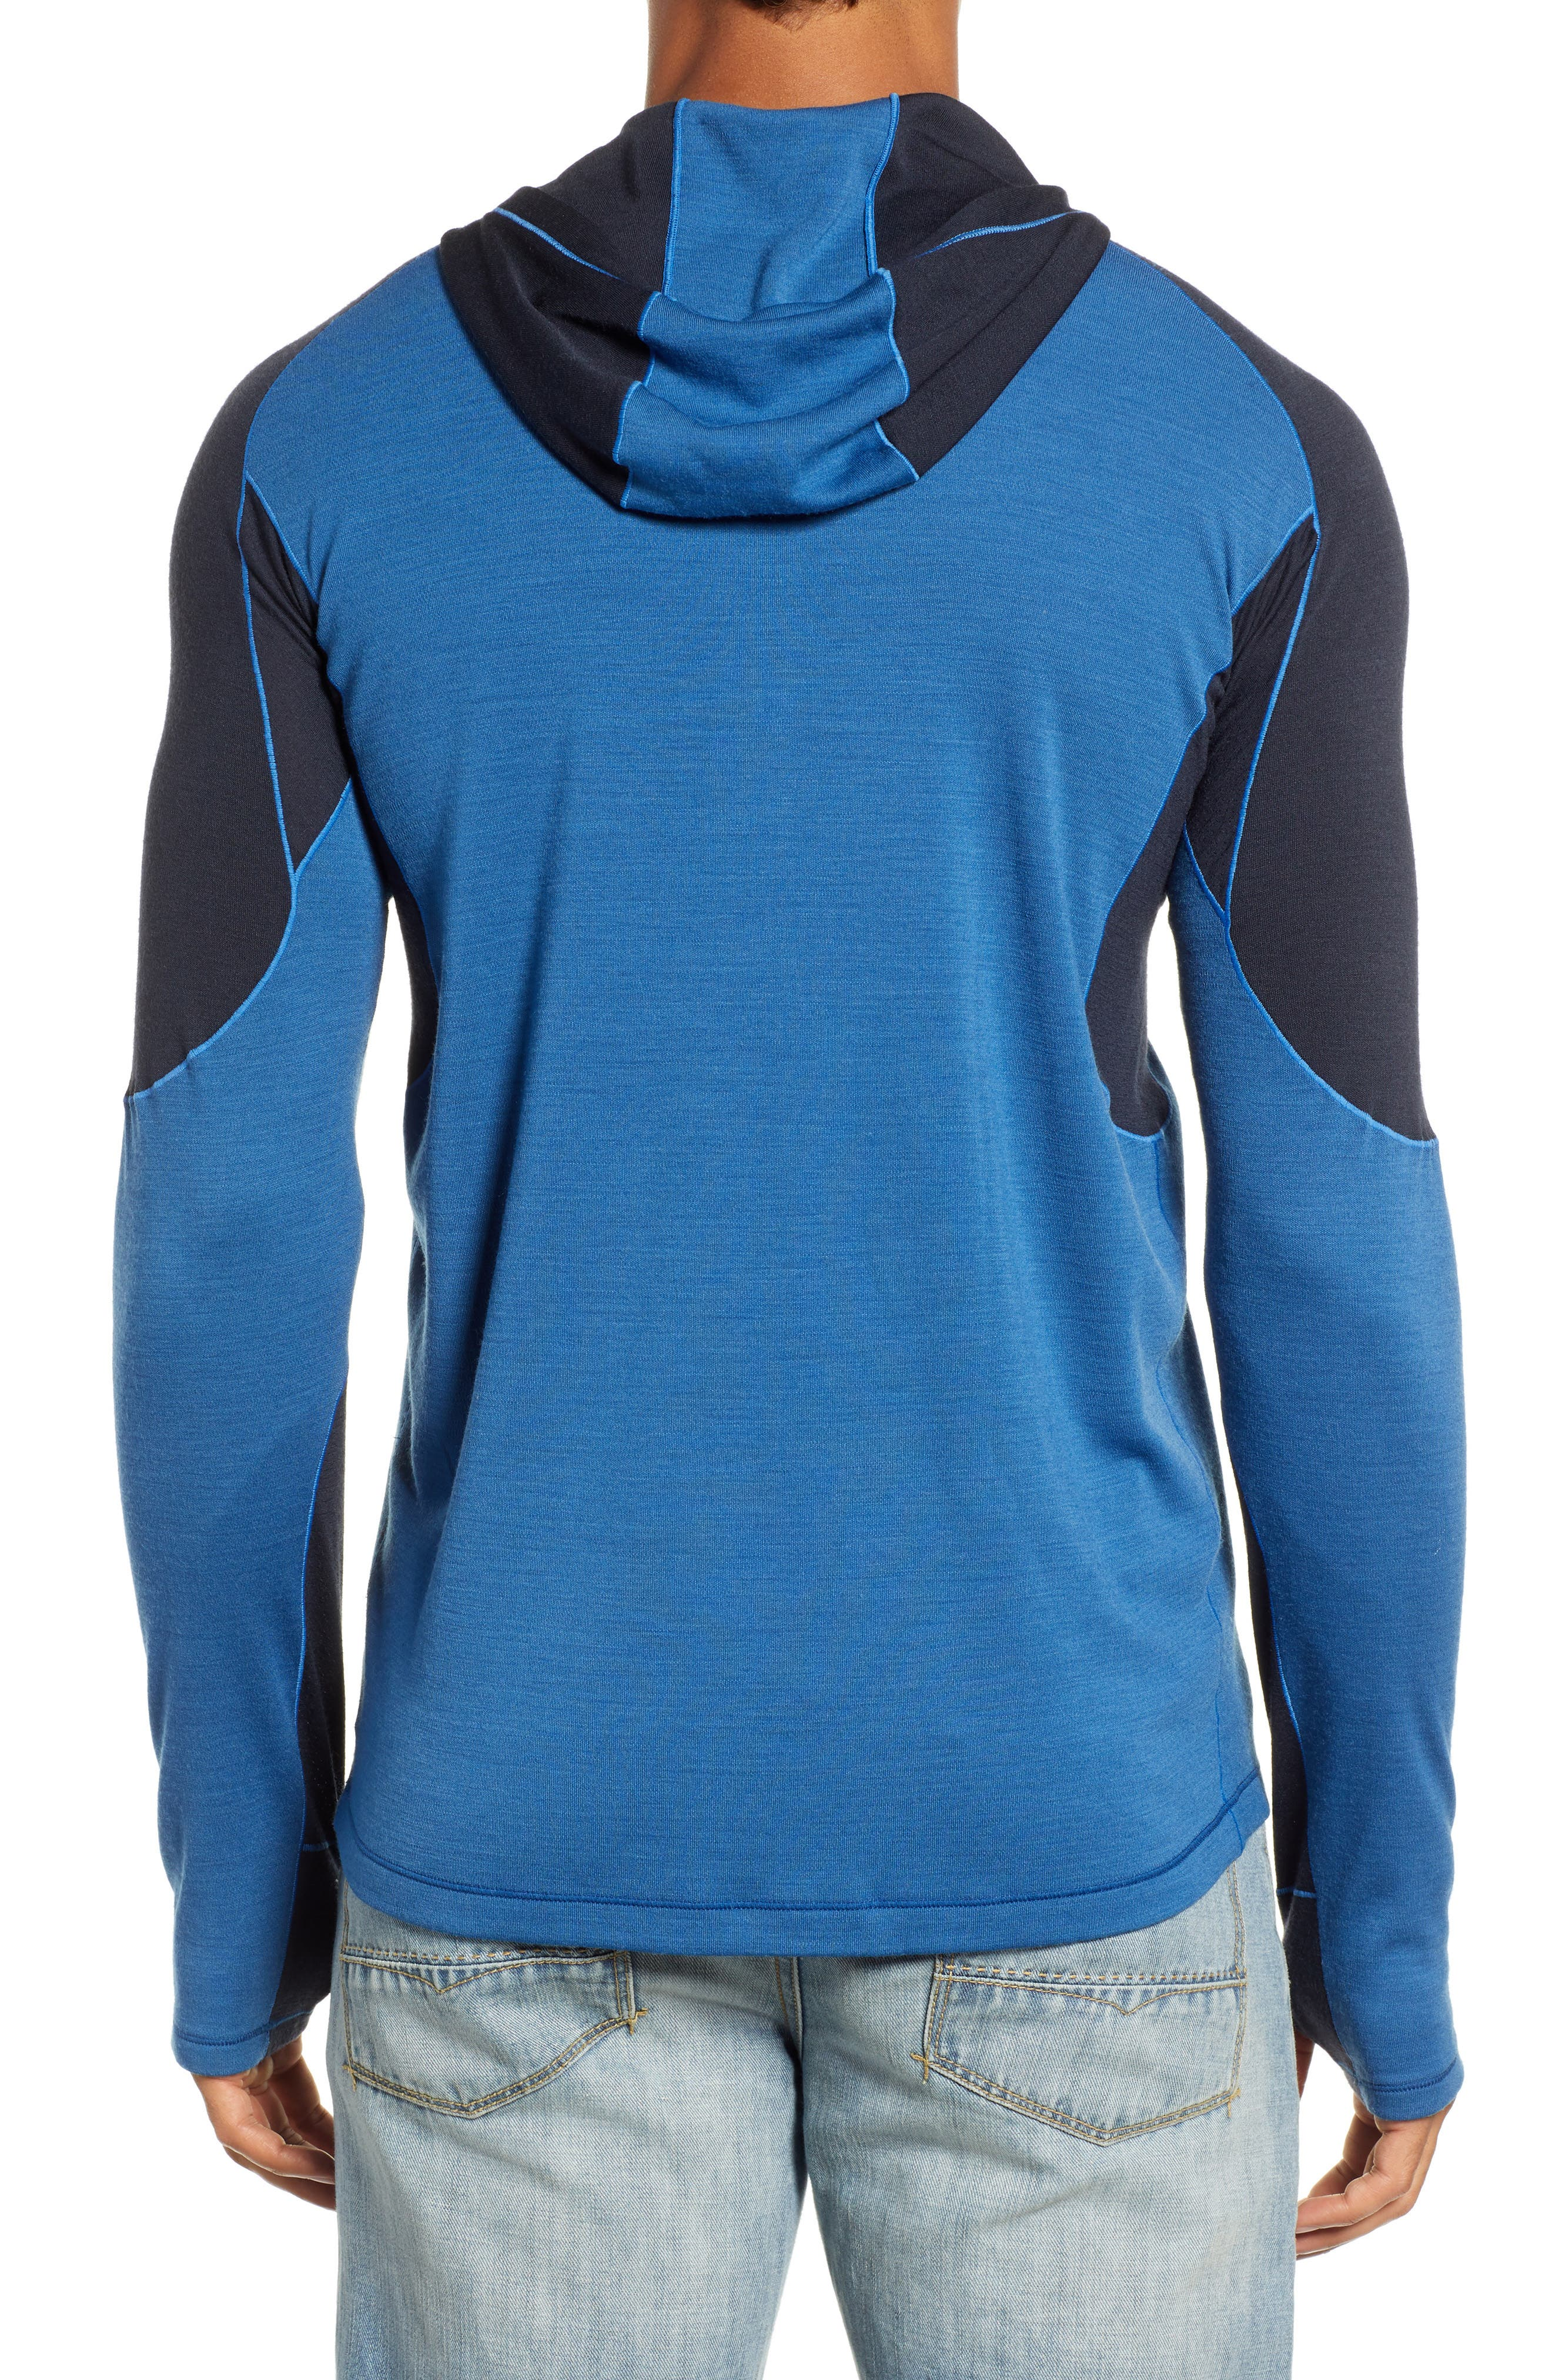 PhD<sup>®</sup> Light Merino Wool Blend Hooded Pullover,                             Alternate thumbnail 2, color,                             BRIGHT COBALT HEATHER